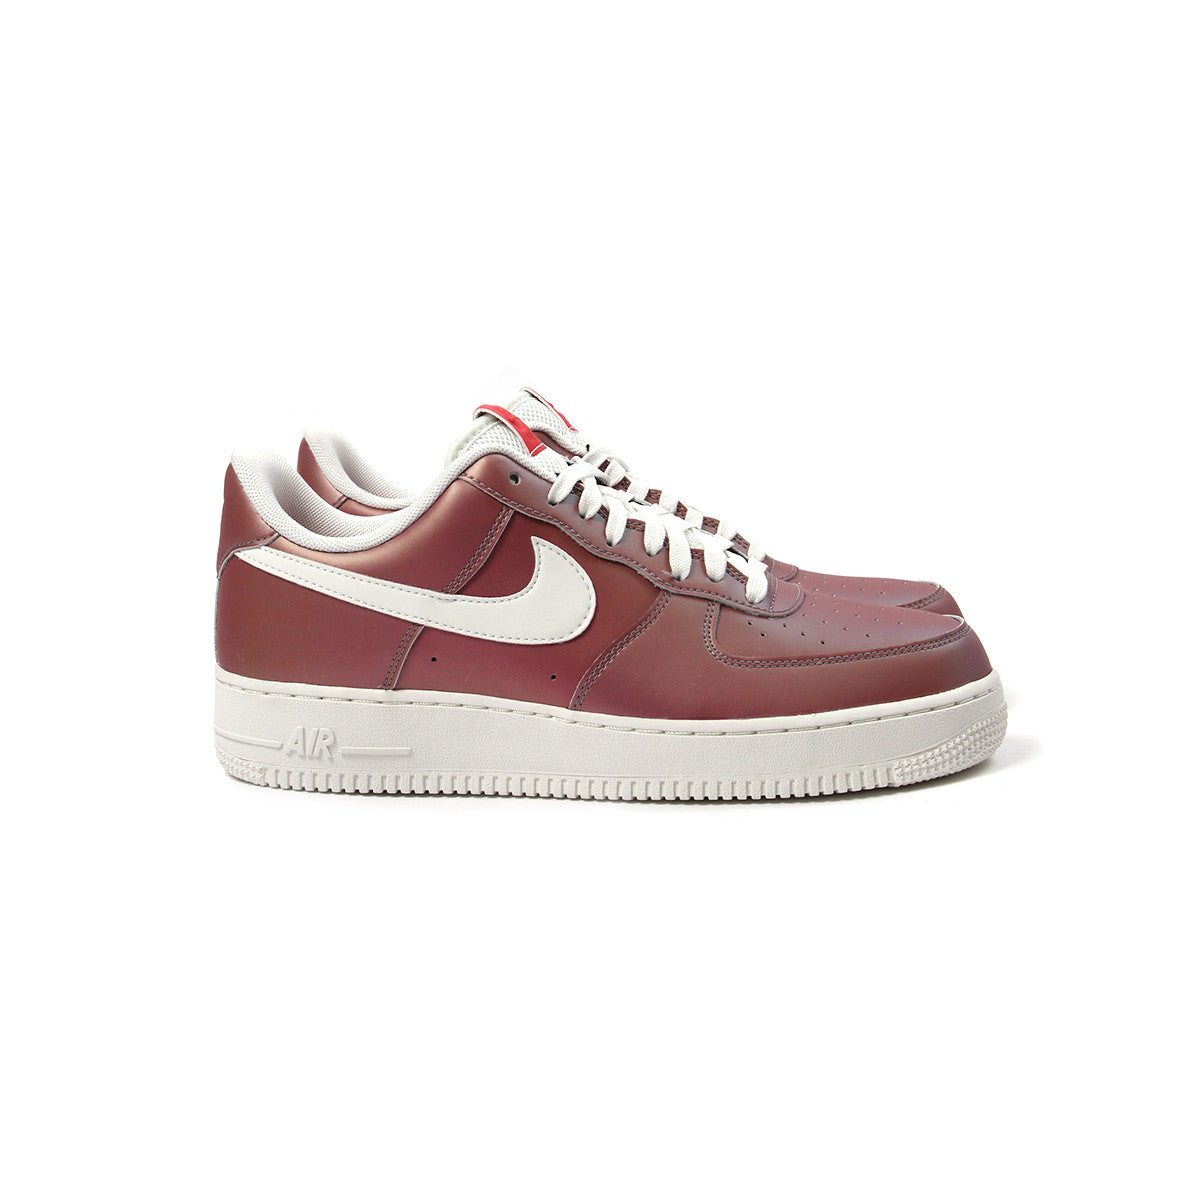 Buy nike air force 1 lv8 low maroon > up to 47% Discounts